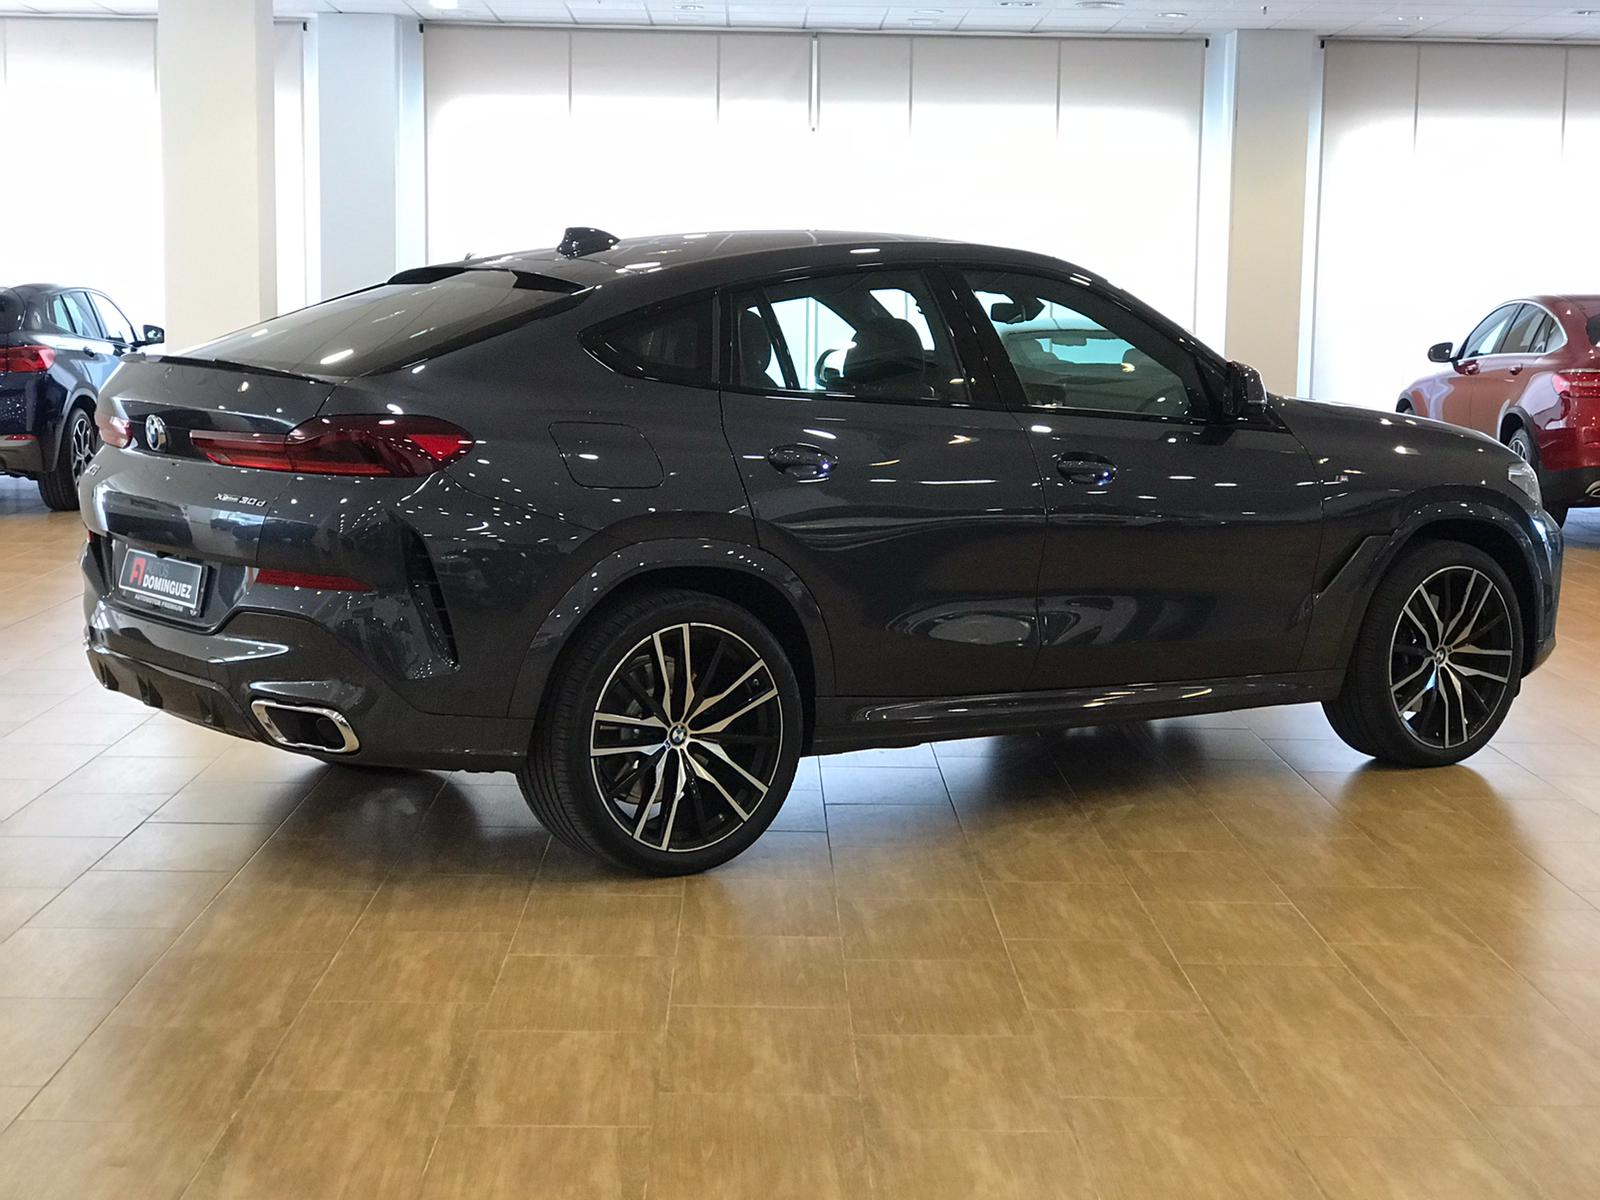 BMW X6 XDRIVE 30dA PACK M 265 CV 5